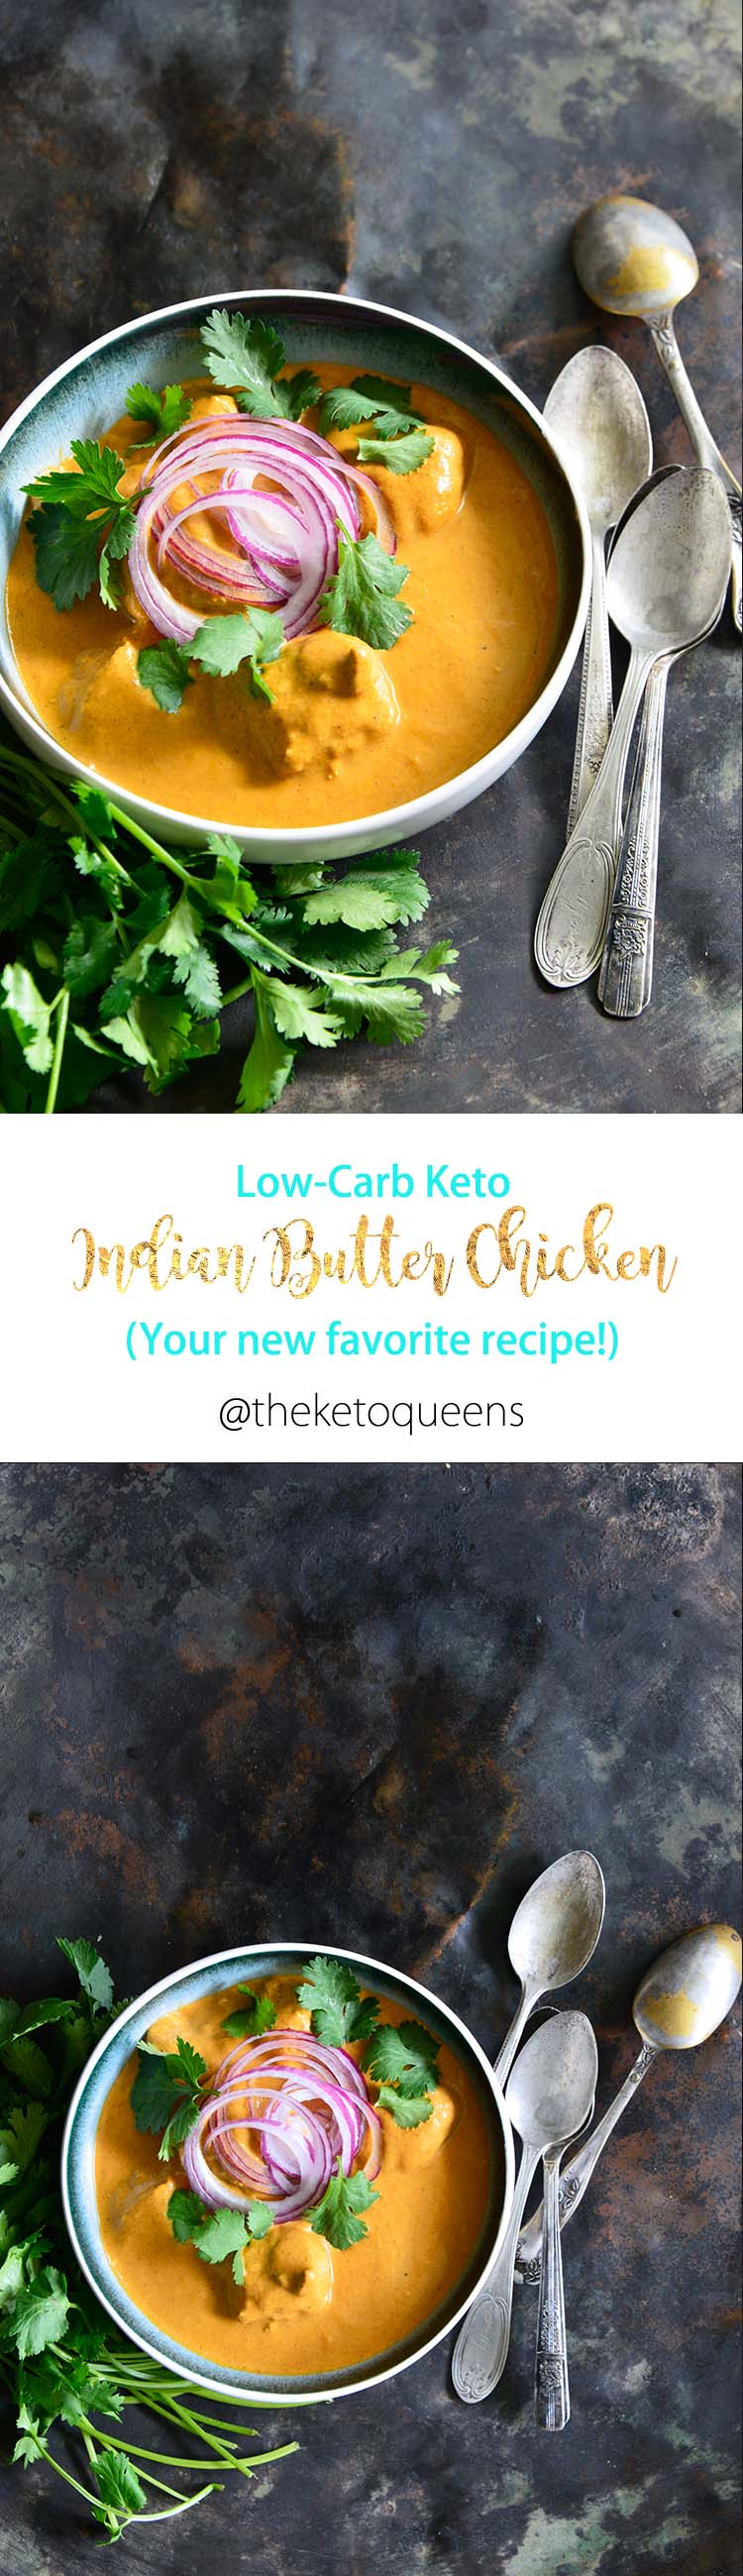 Low Carb Keto Indian Butter Chicken Recipe Long Pin